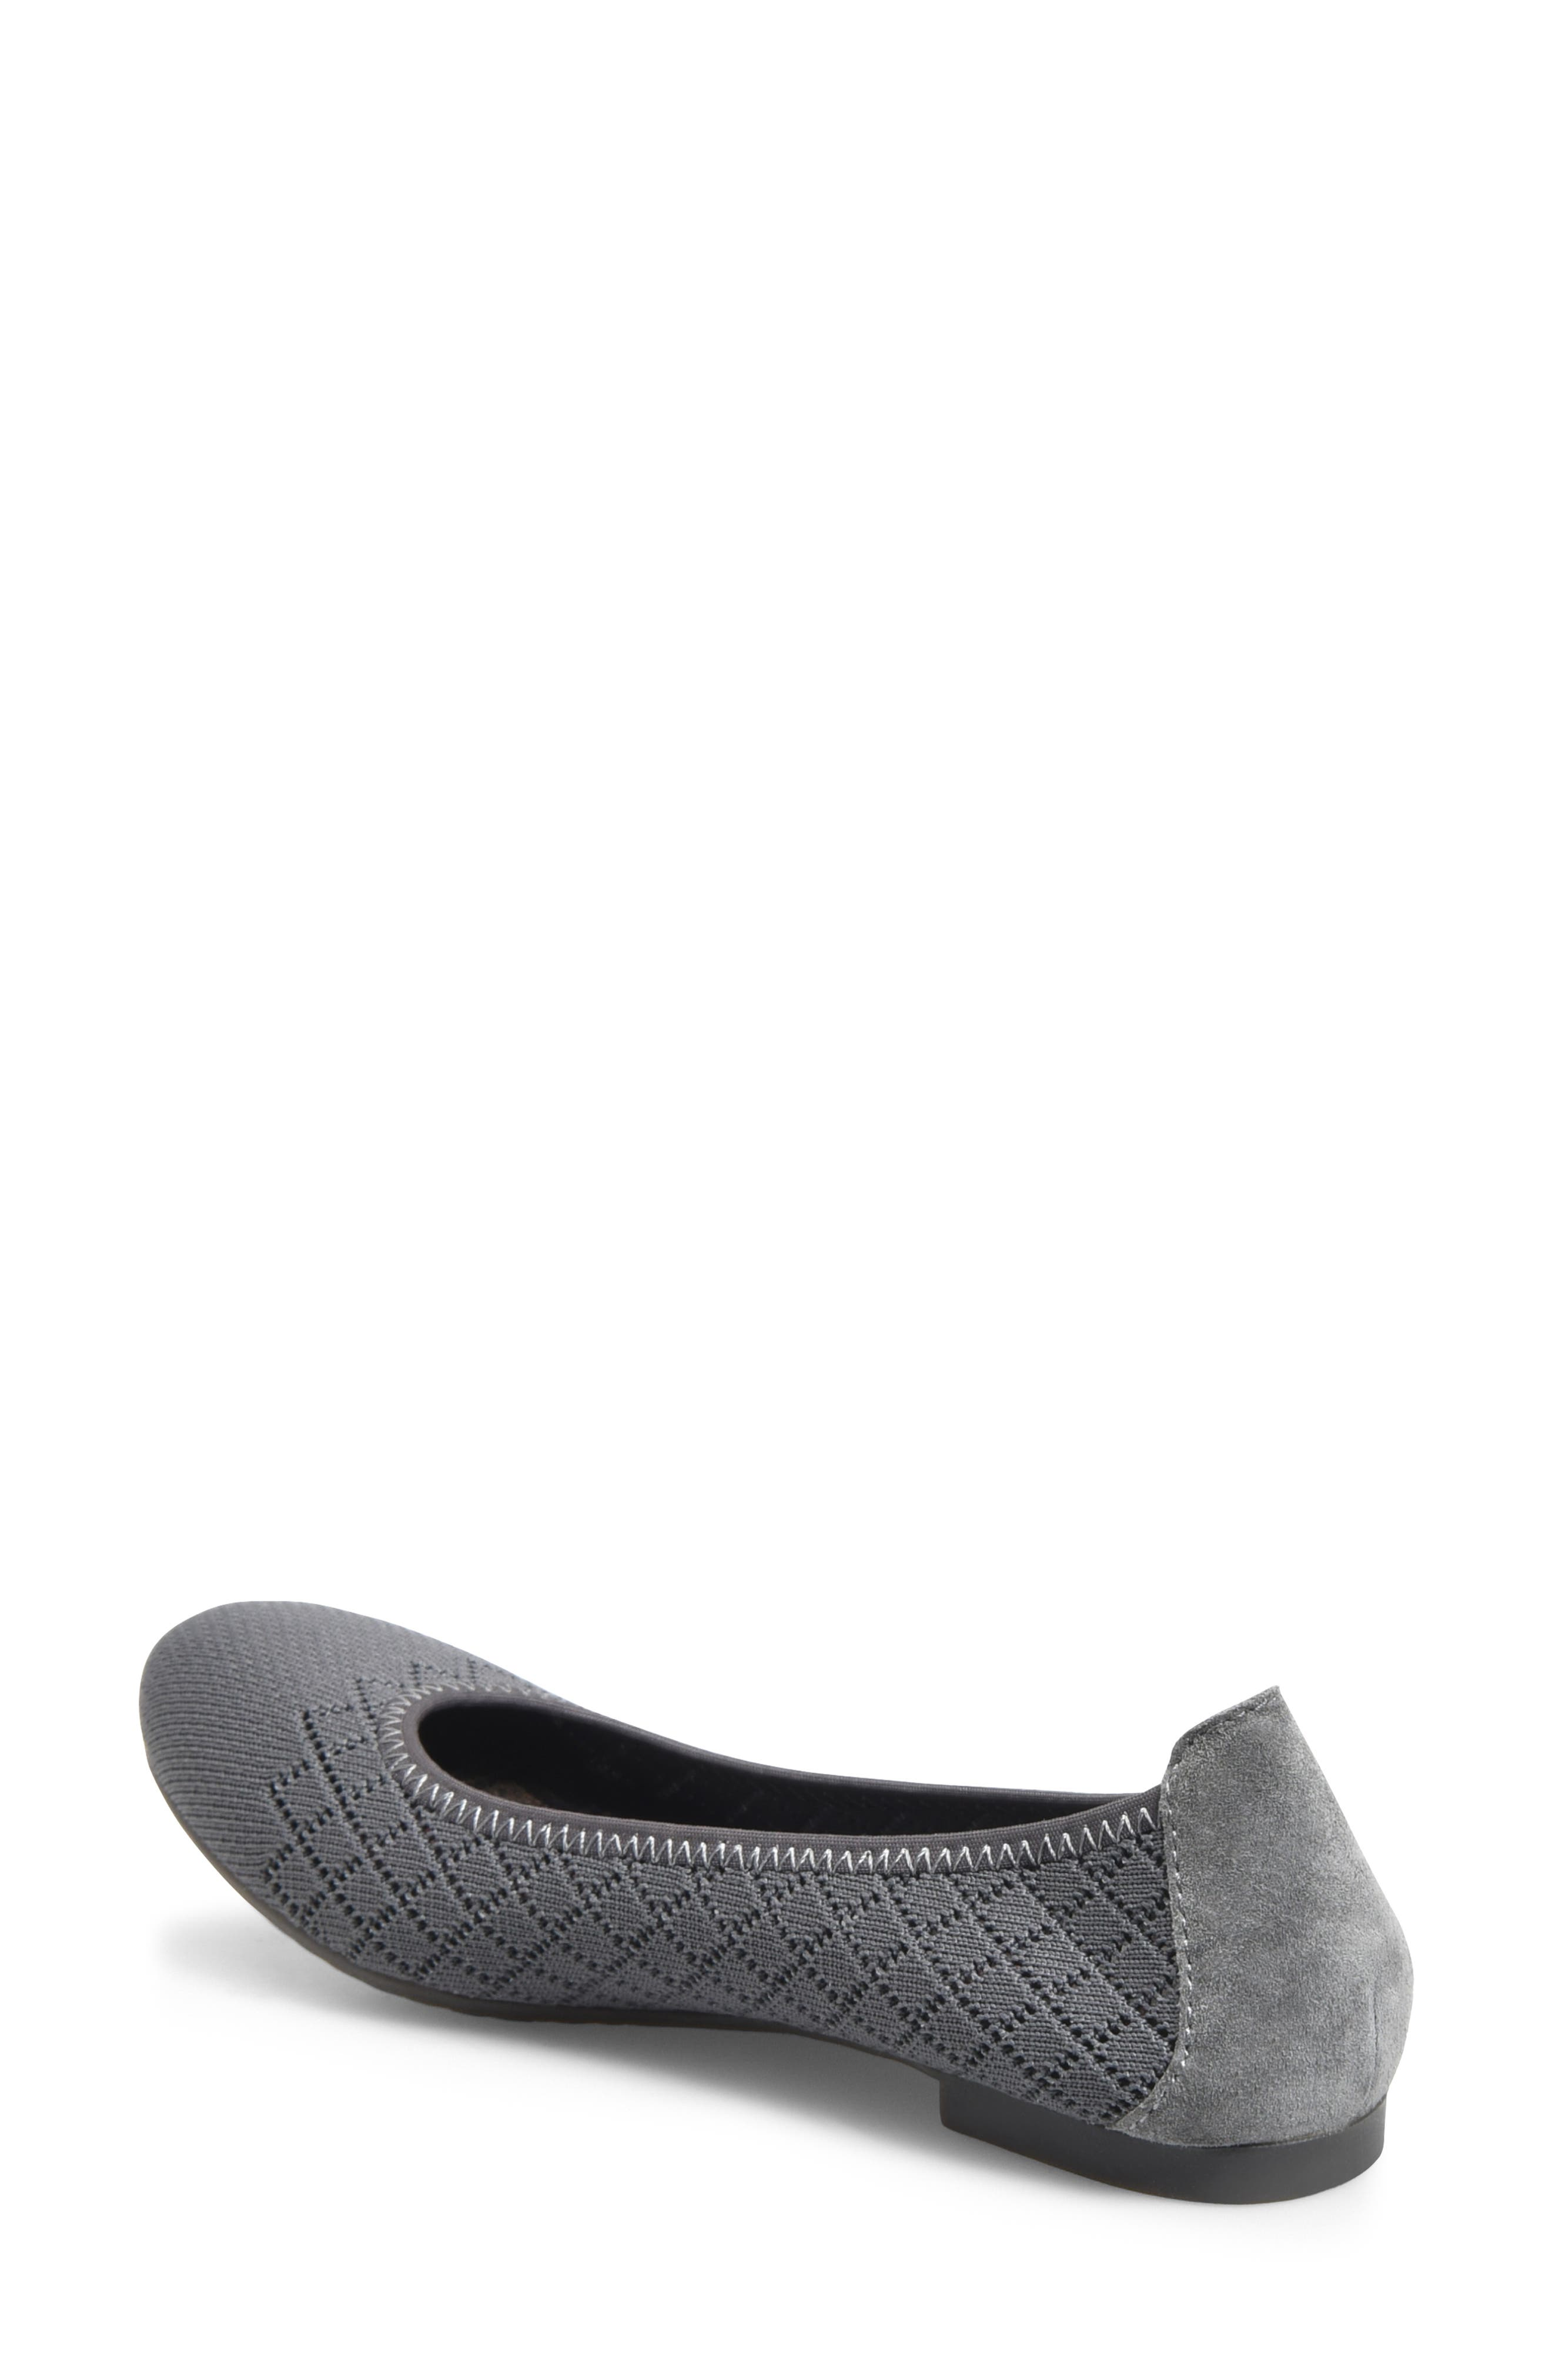 Julianne Knit Flat,                             Alternate thumbnail 2, color,                             GREY KNIT FABRIC